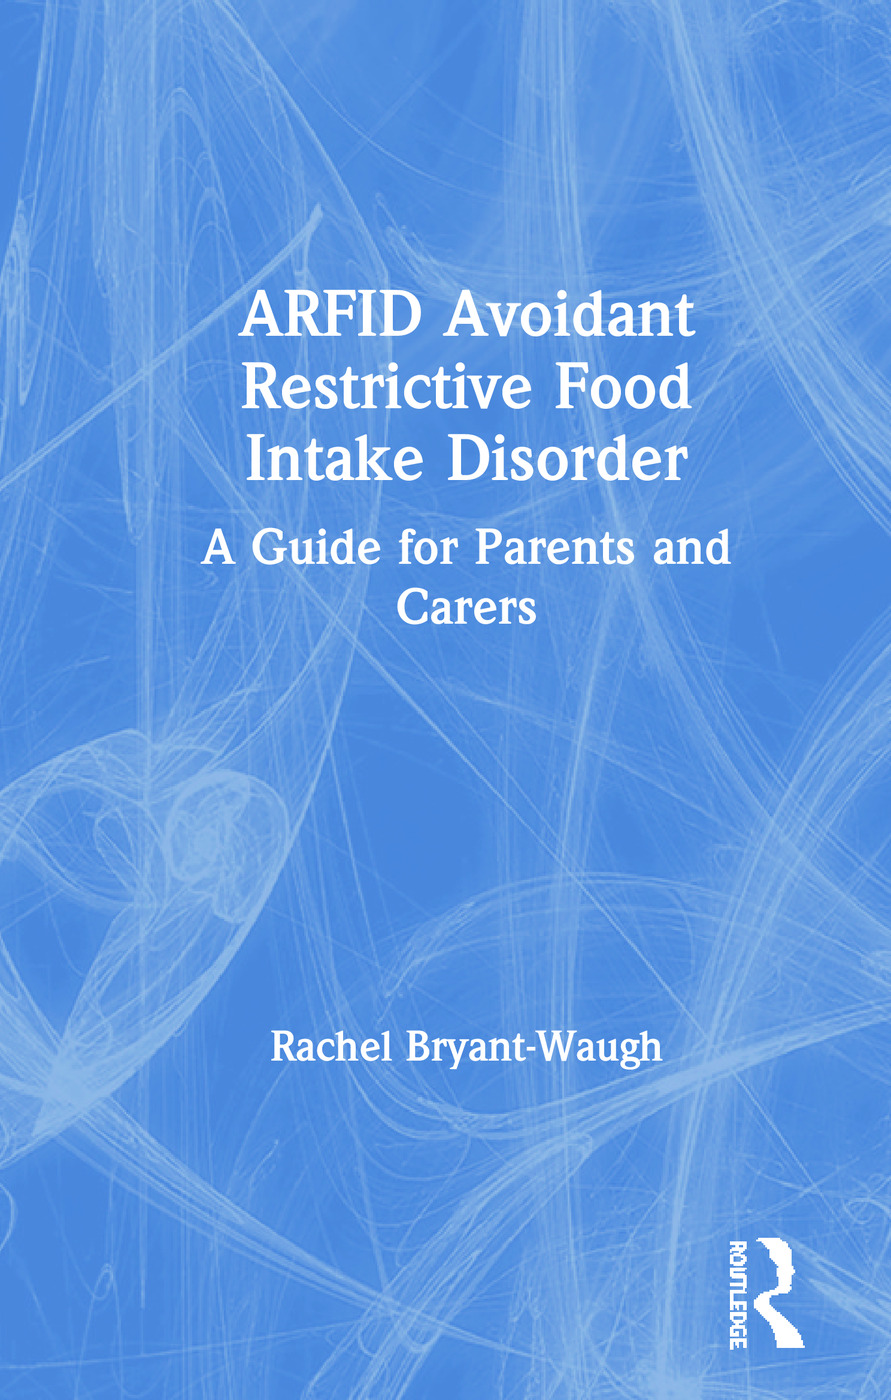 What are the consequences of having ARFID?